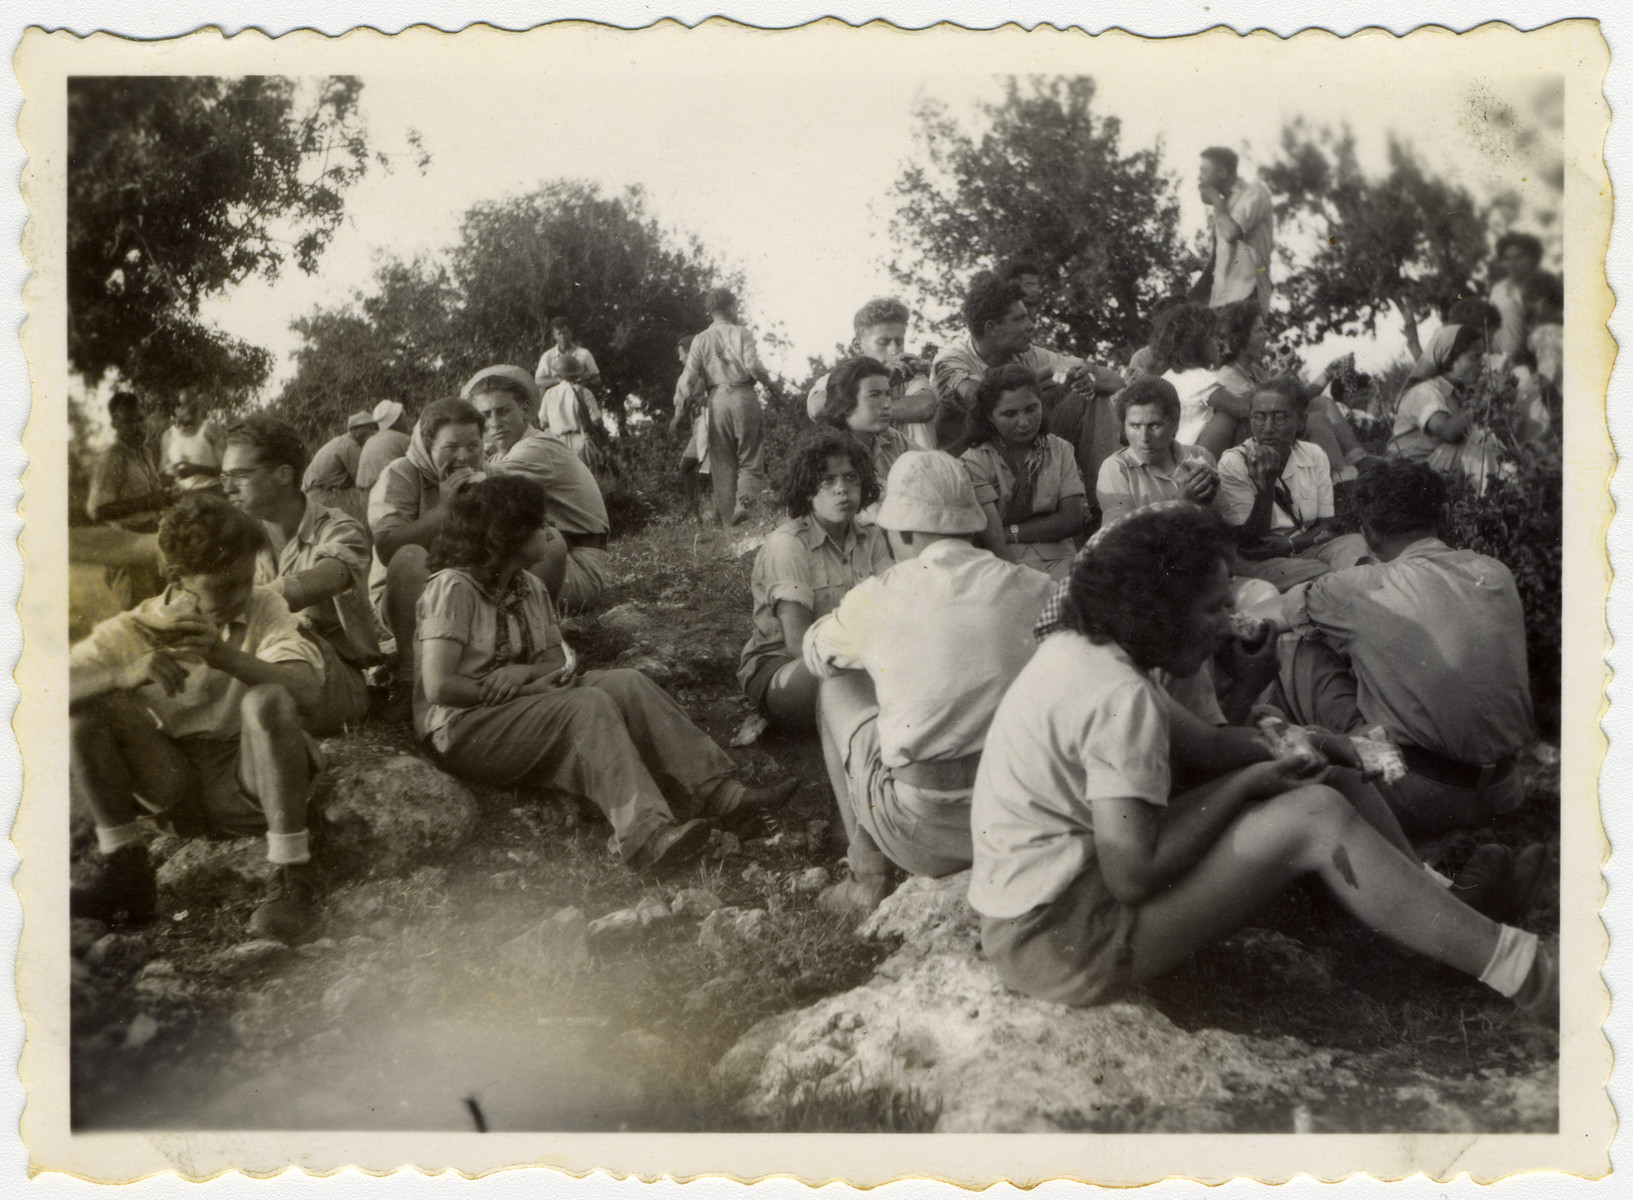 New settlers in Kibbutz Yiftach eat their first lunch outside after the establishment of the kibbutz since the dining room had still not been built.  Pictured on the far left wearing glasses is Mordechay (formerly Kurt) Frost.